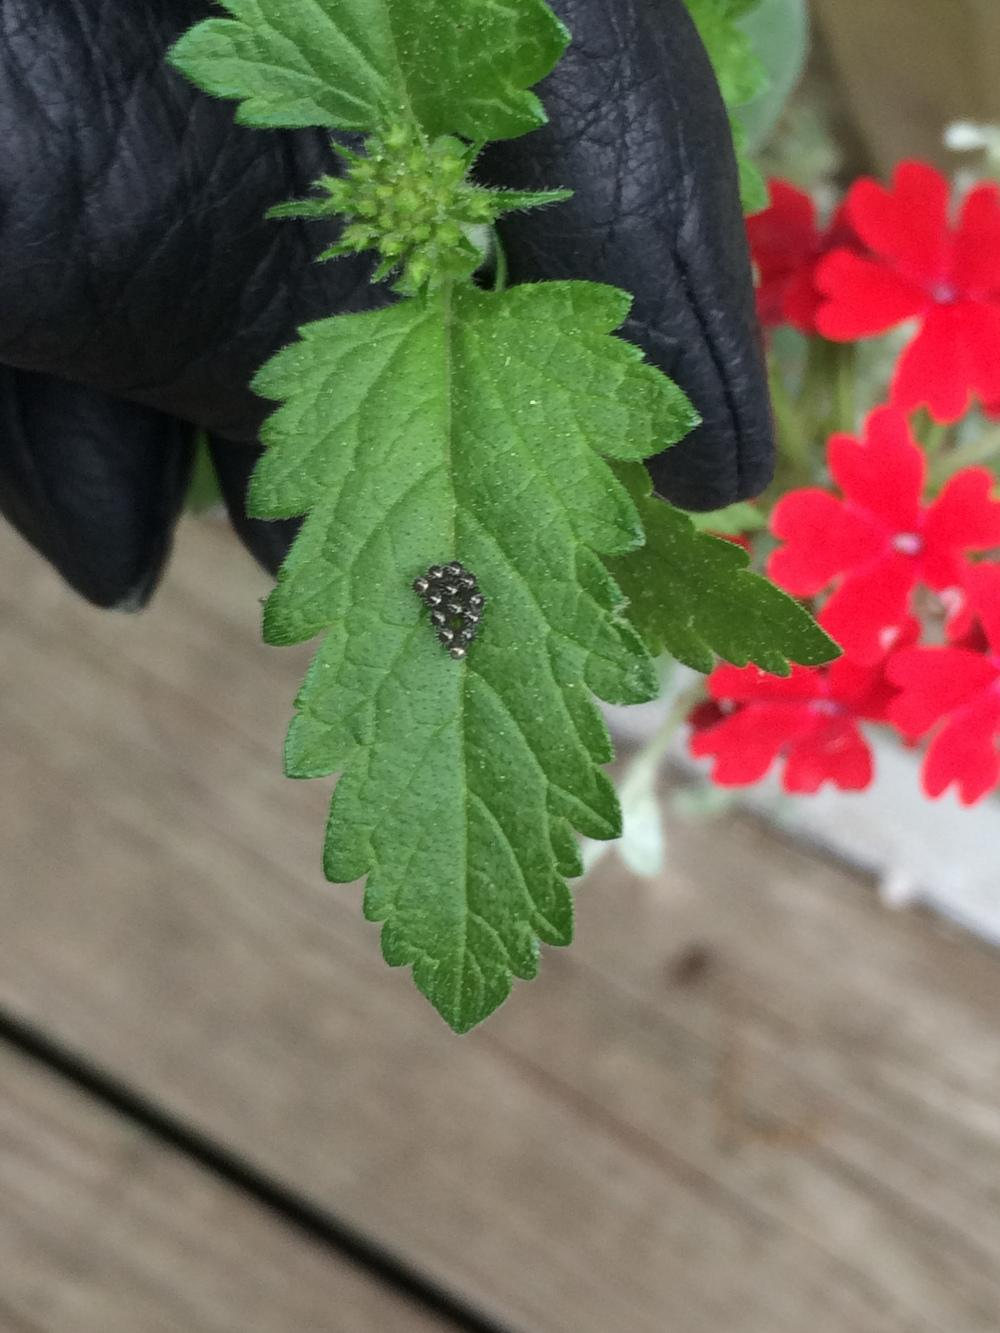 Insect and Bug ID forum: Egg identification please - Garden org